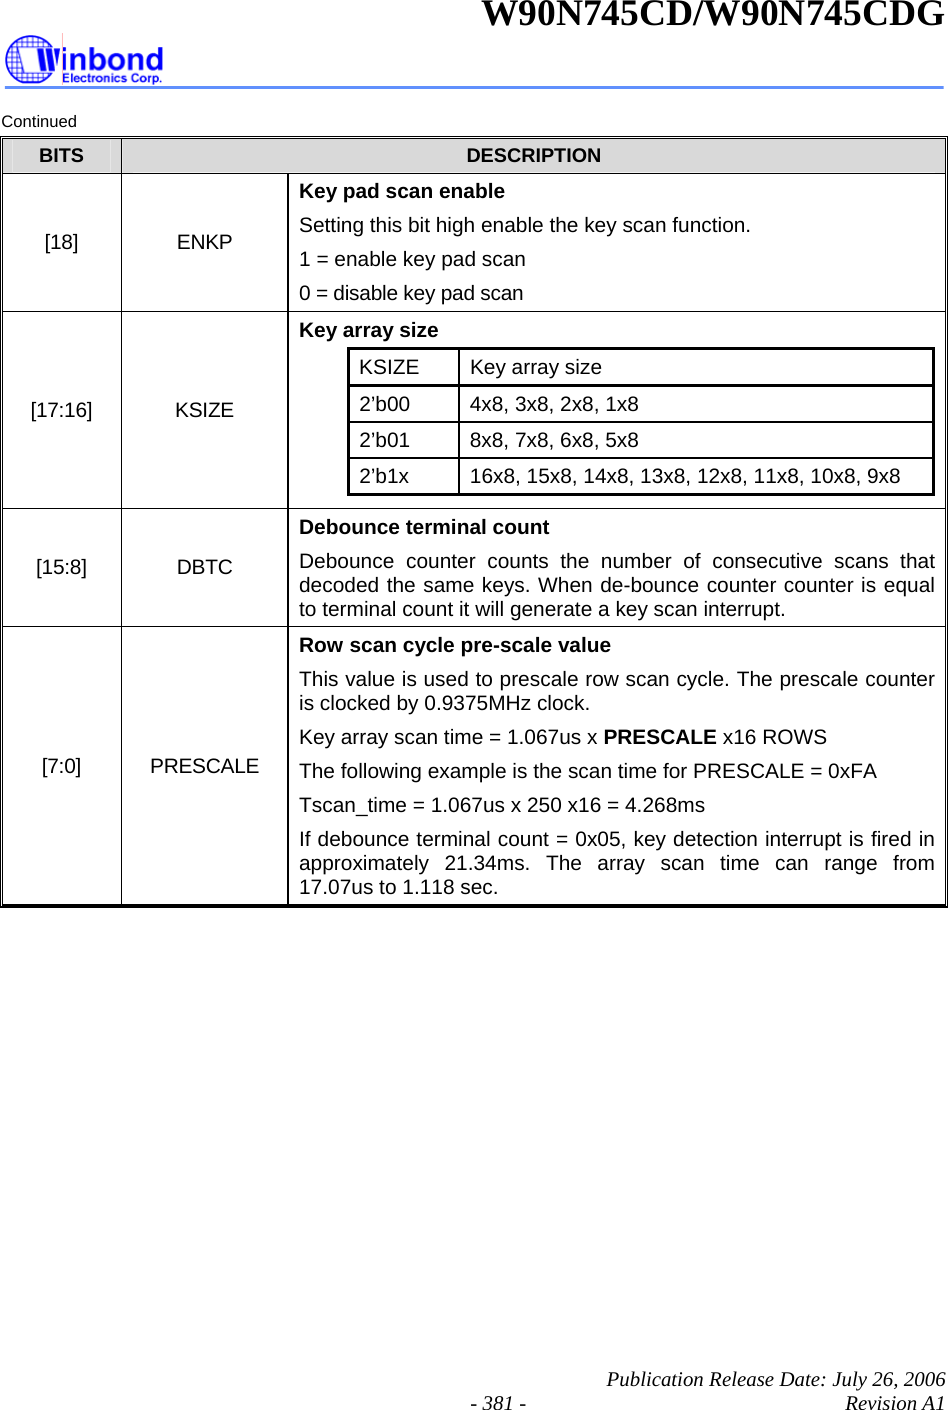 W90N745 Data Sheet_0808 Nuvoton Sheet